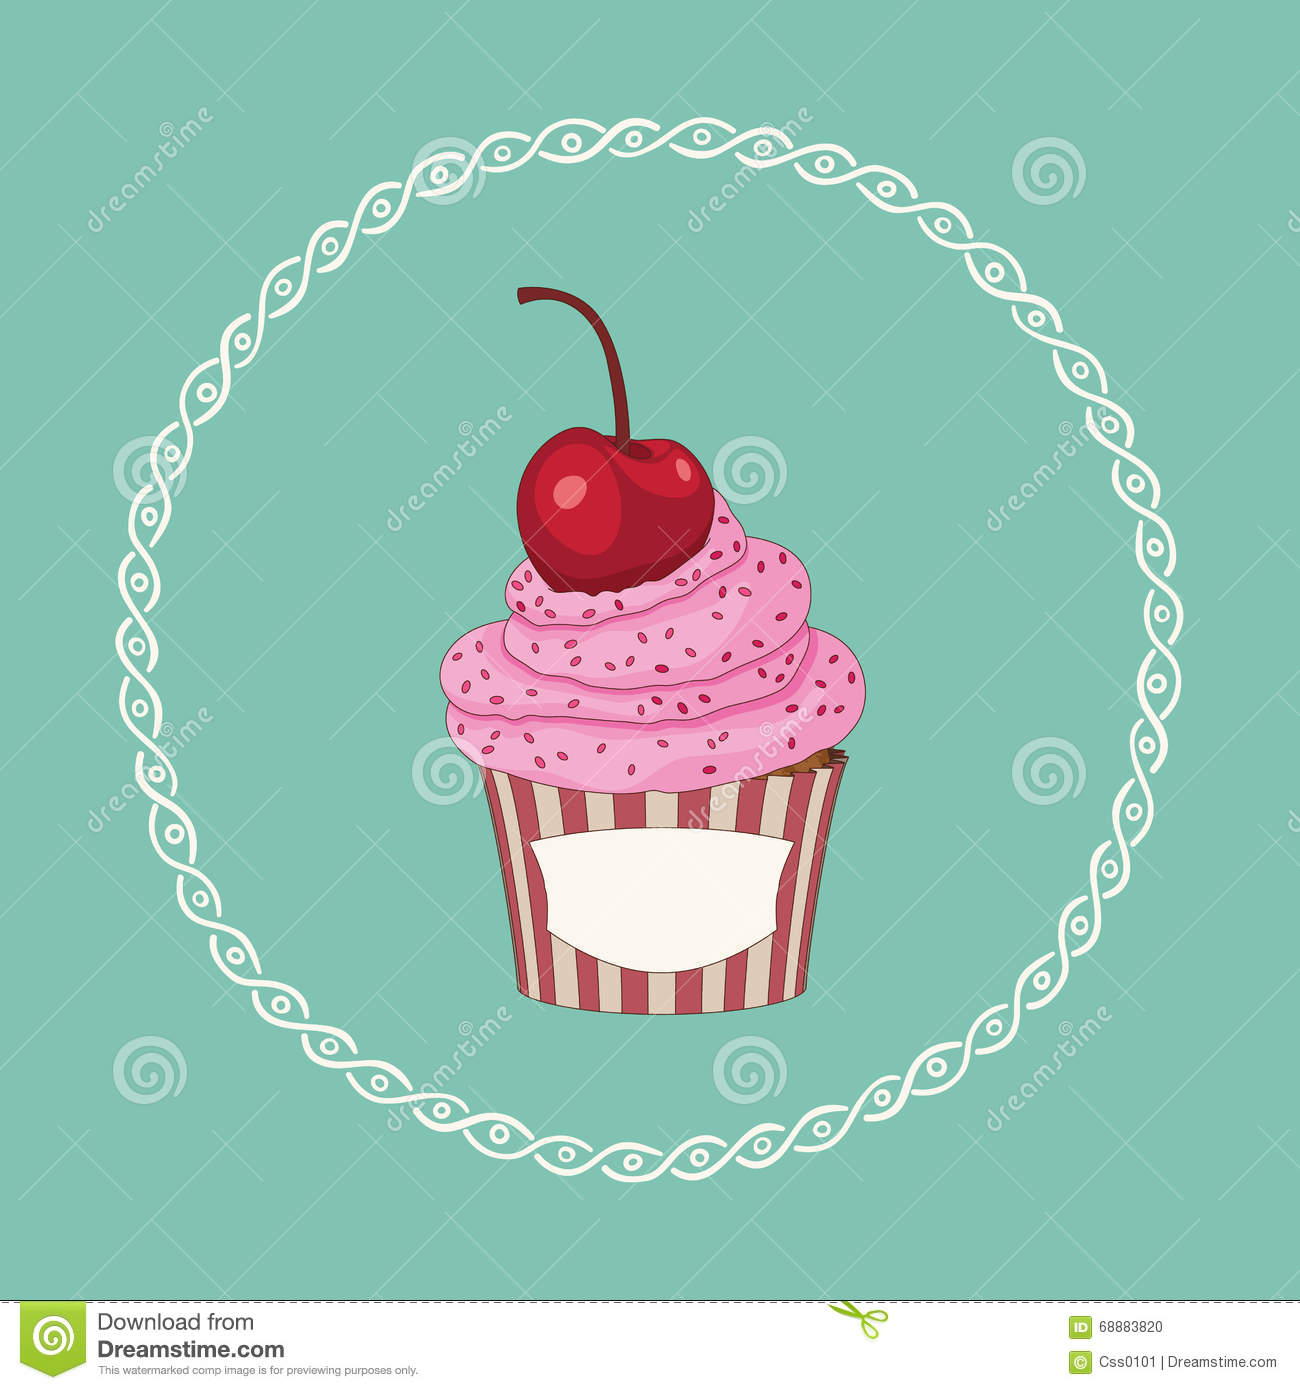 Cupcake Vector Frame Stock Illustrations – 3,701 Cupcake